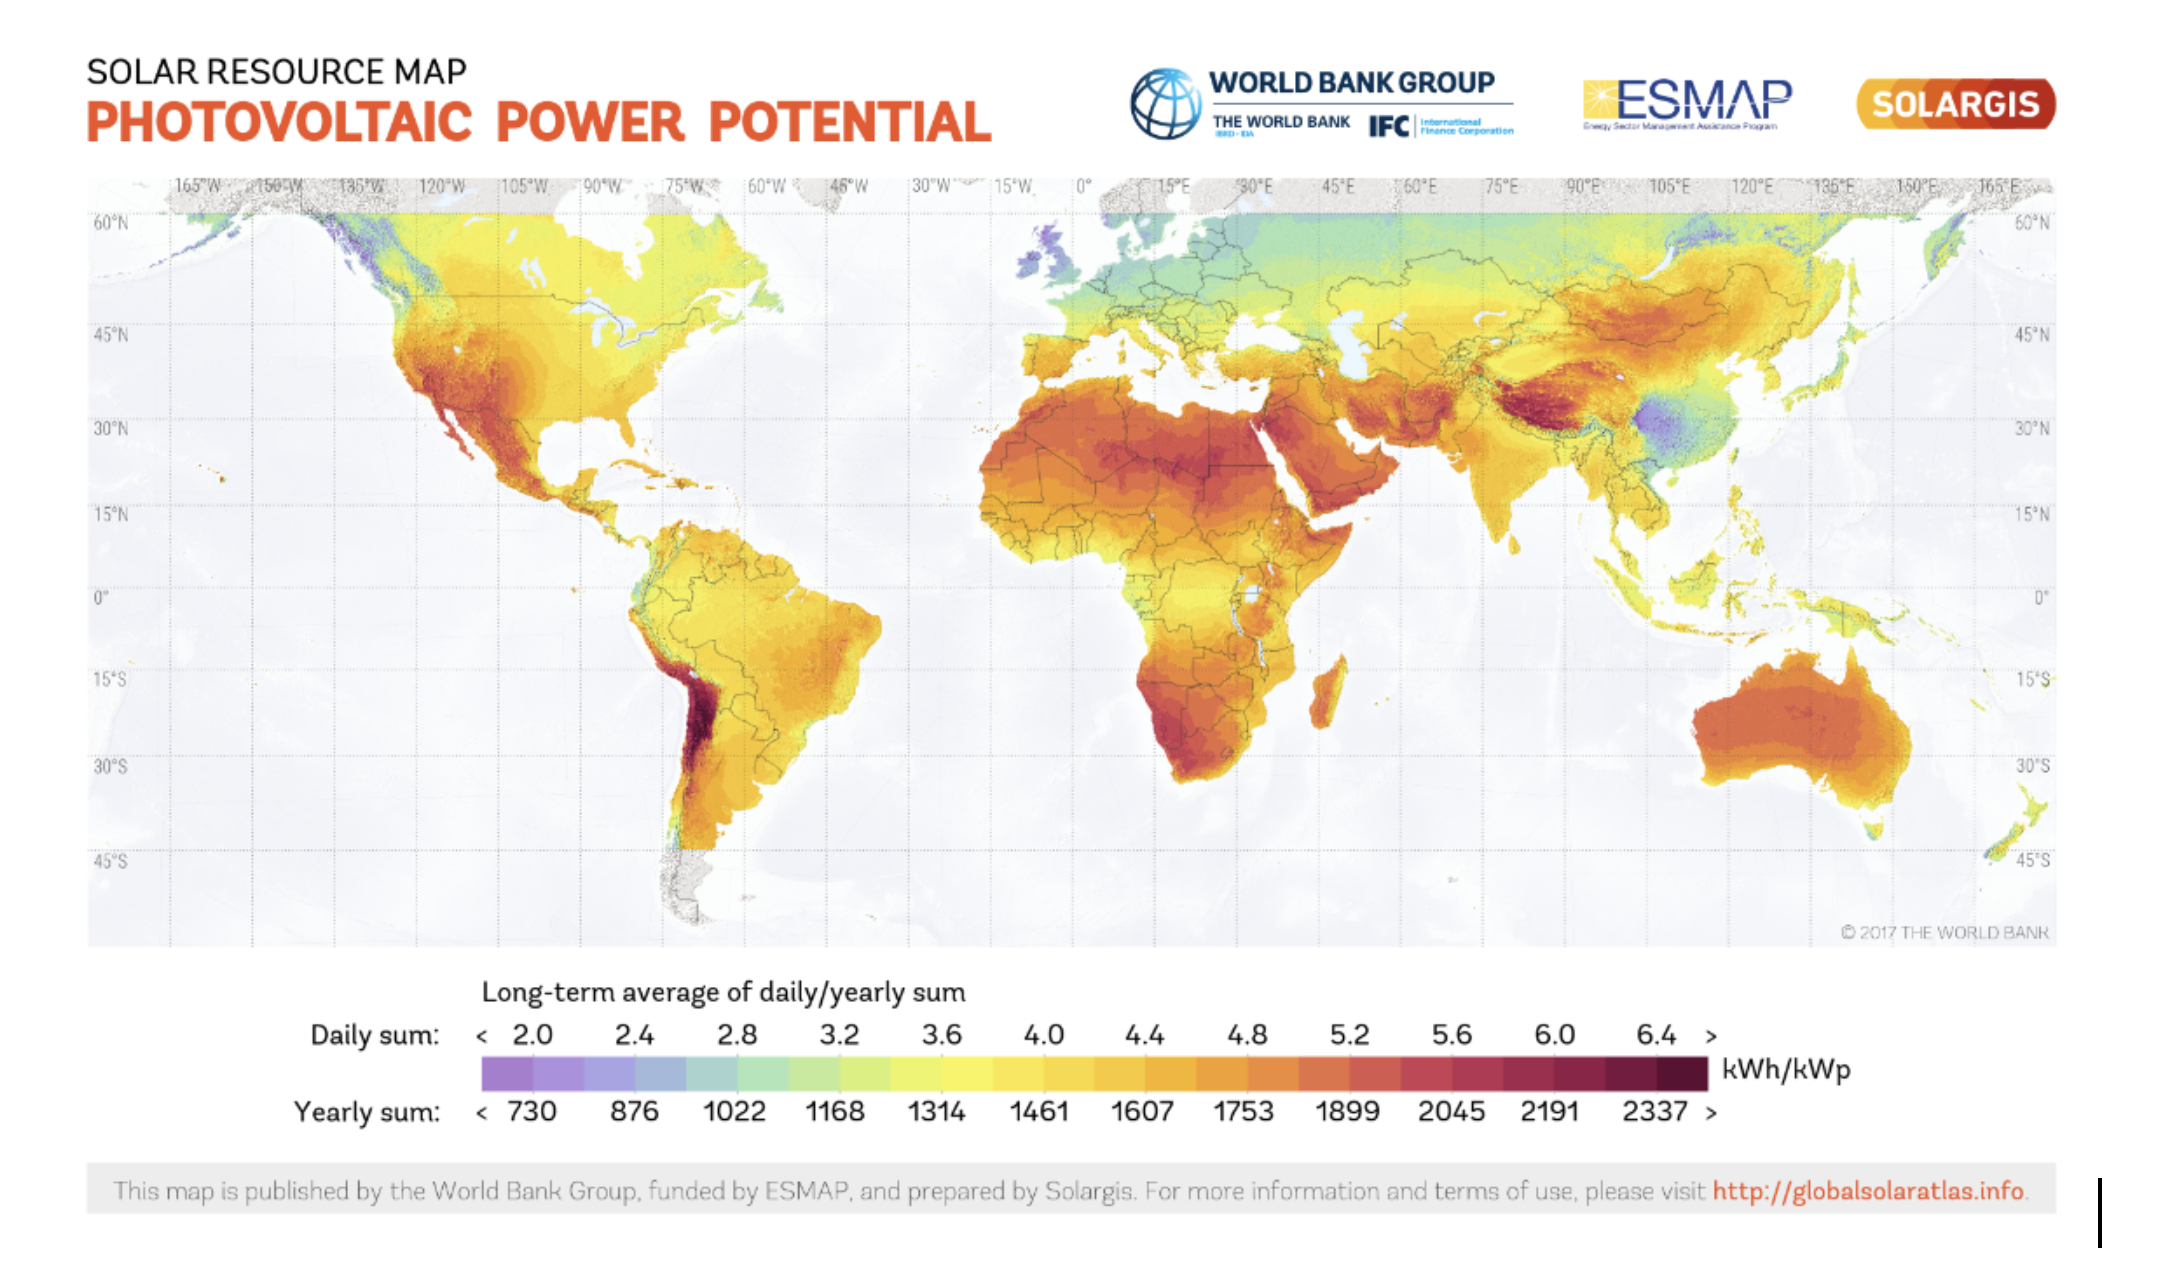 Huge parts of the developing world are rich in photovoltaic potential